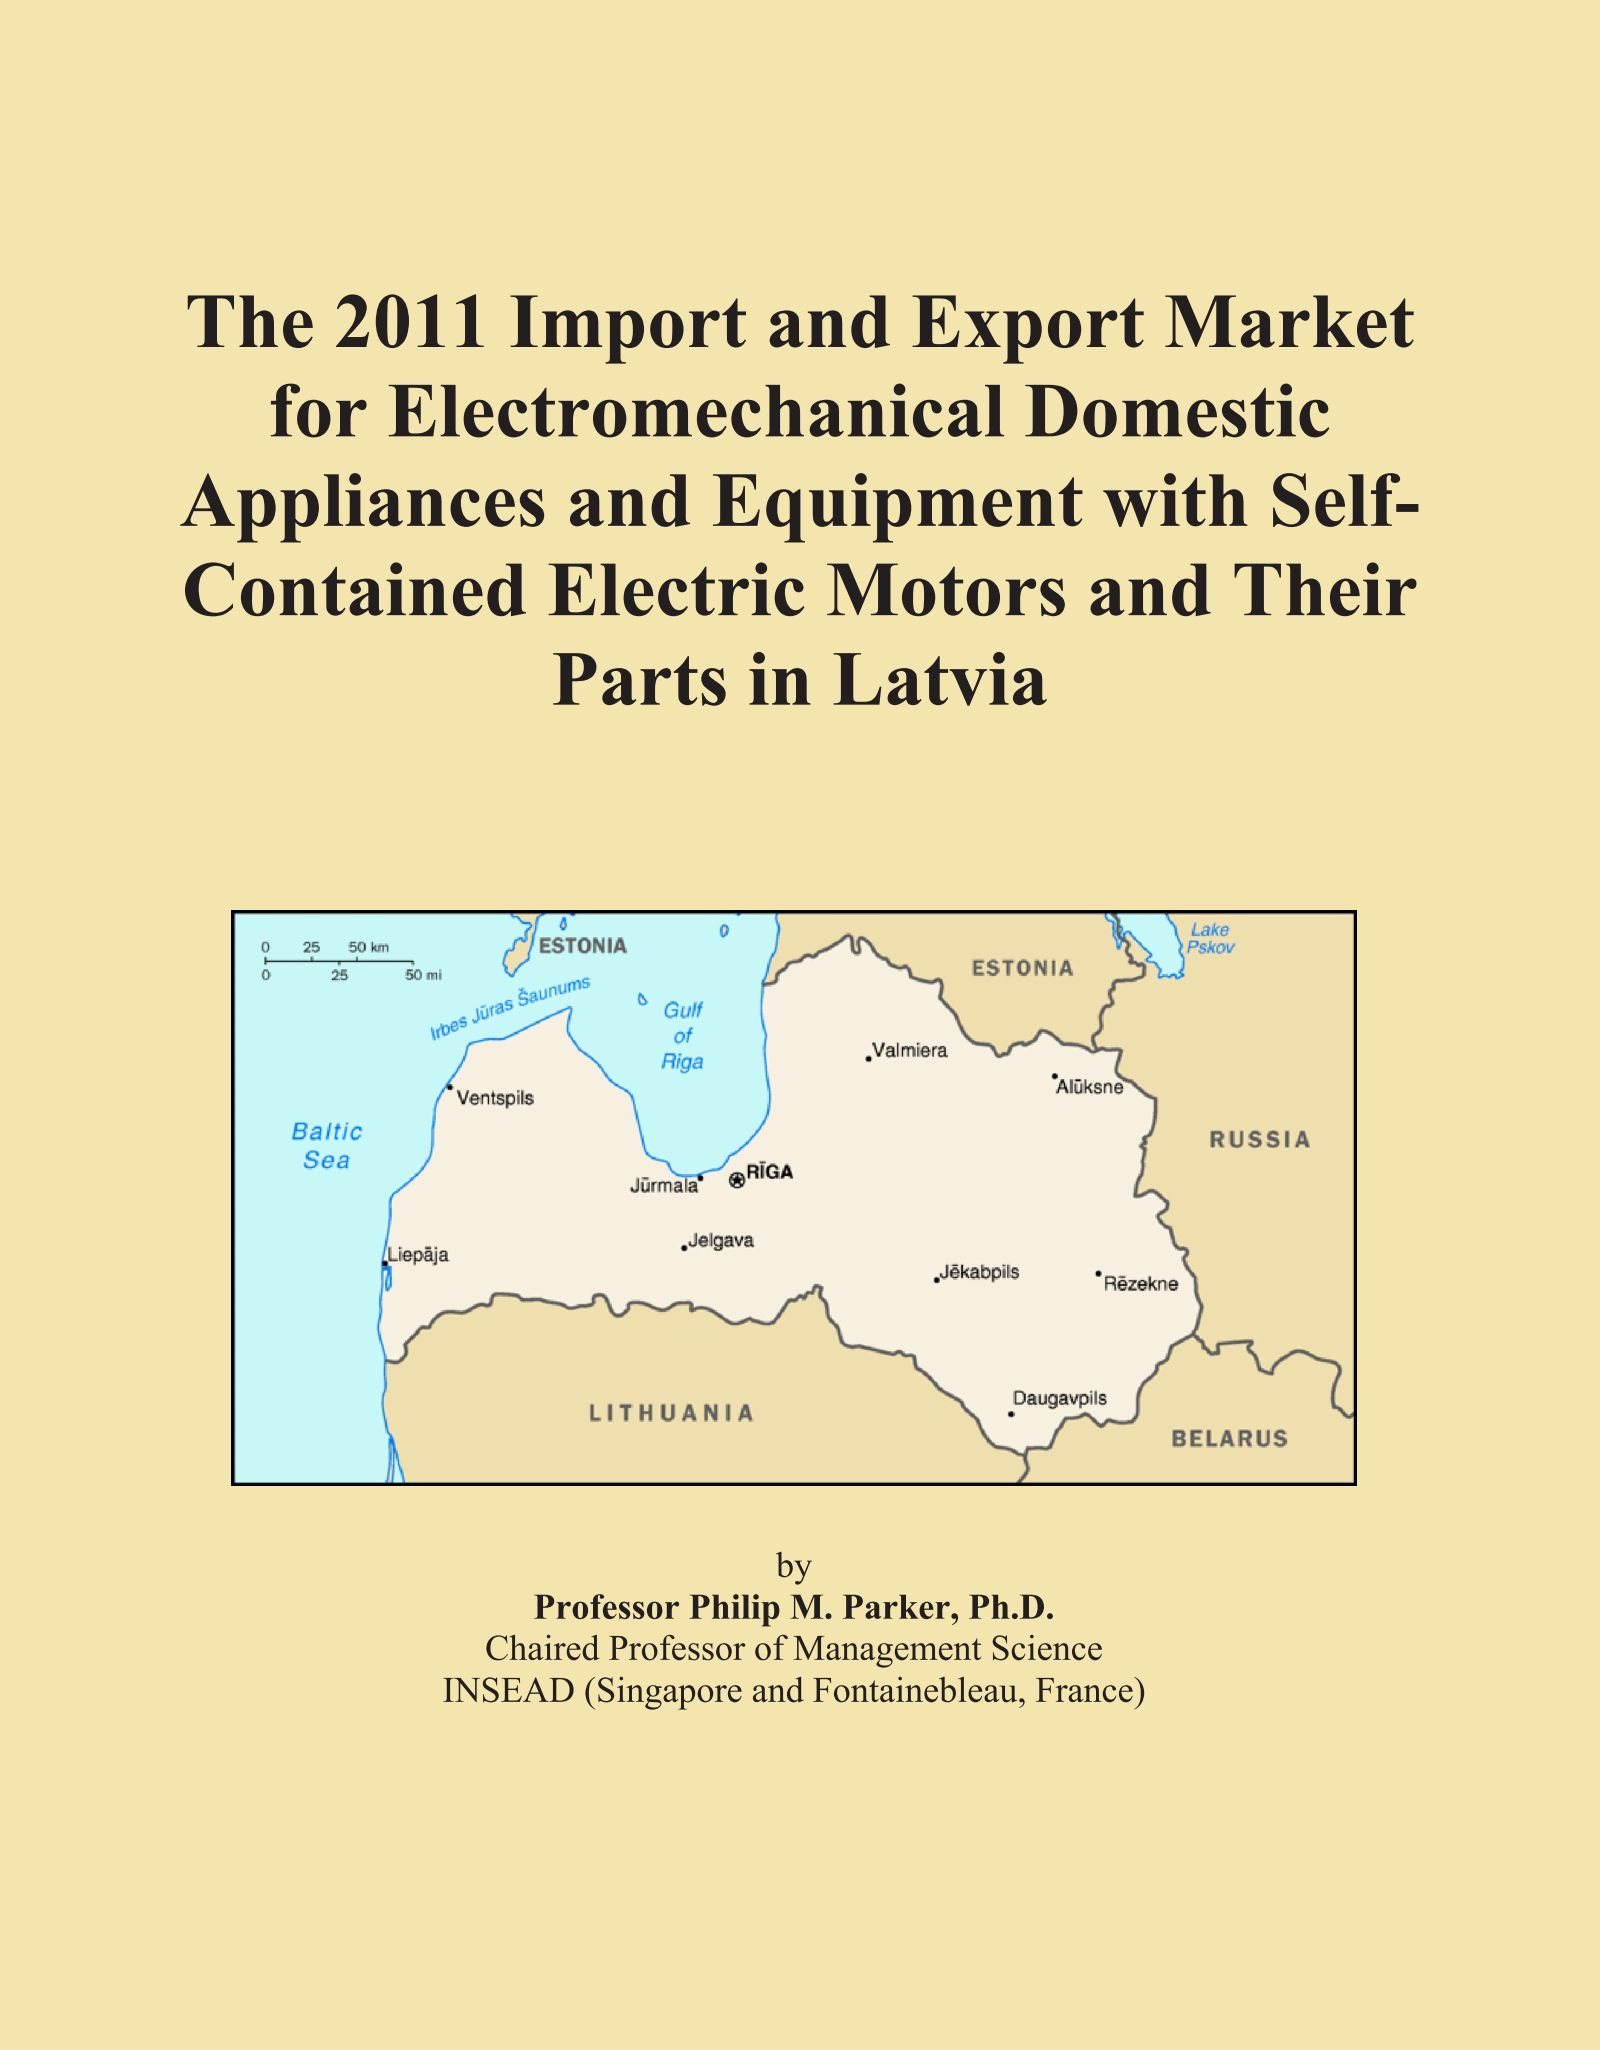 Download The 2011 Import and Export Market for Electromechanical Domestic Appliances and Equipment with Self-Contained Electric Motors and Their Parts in Latvia ebook